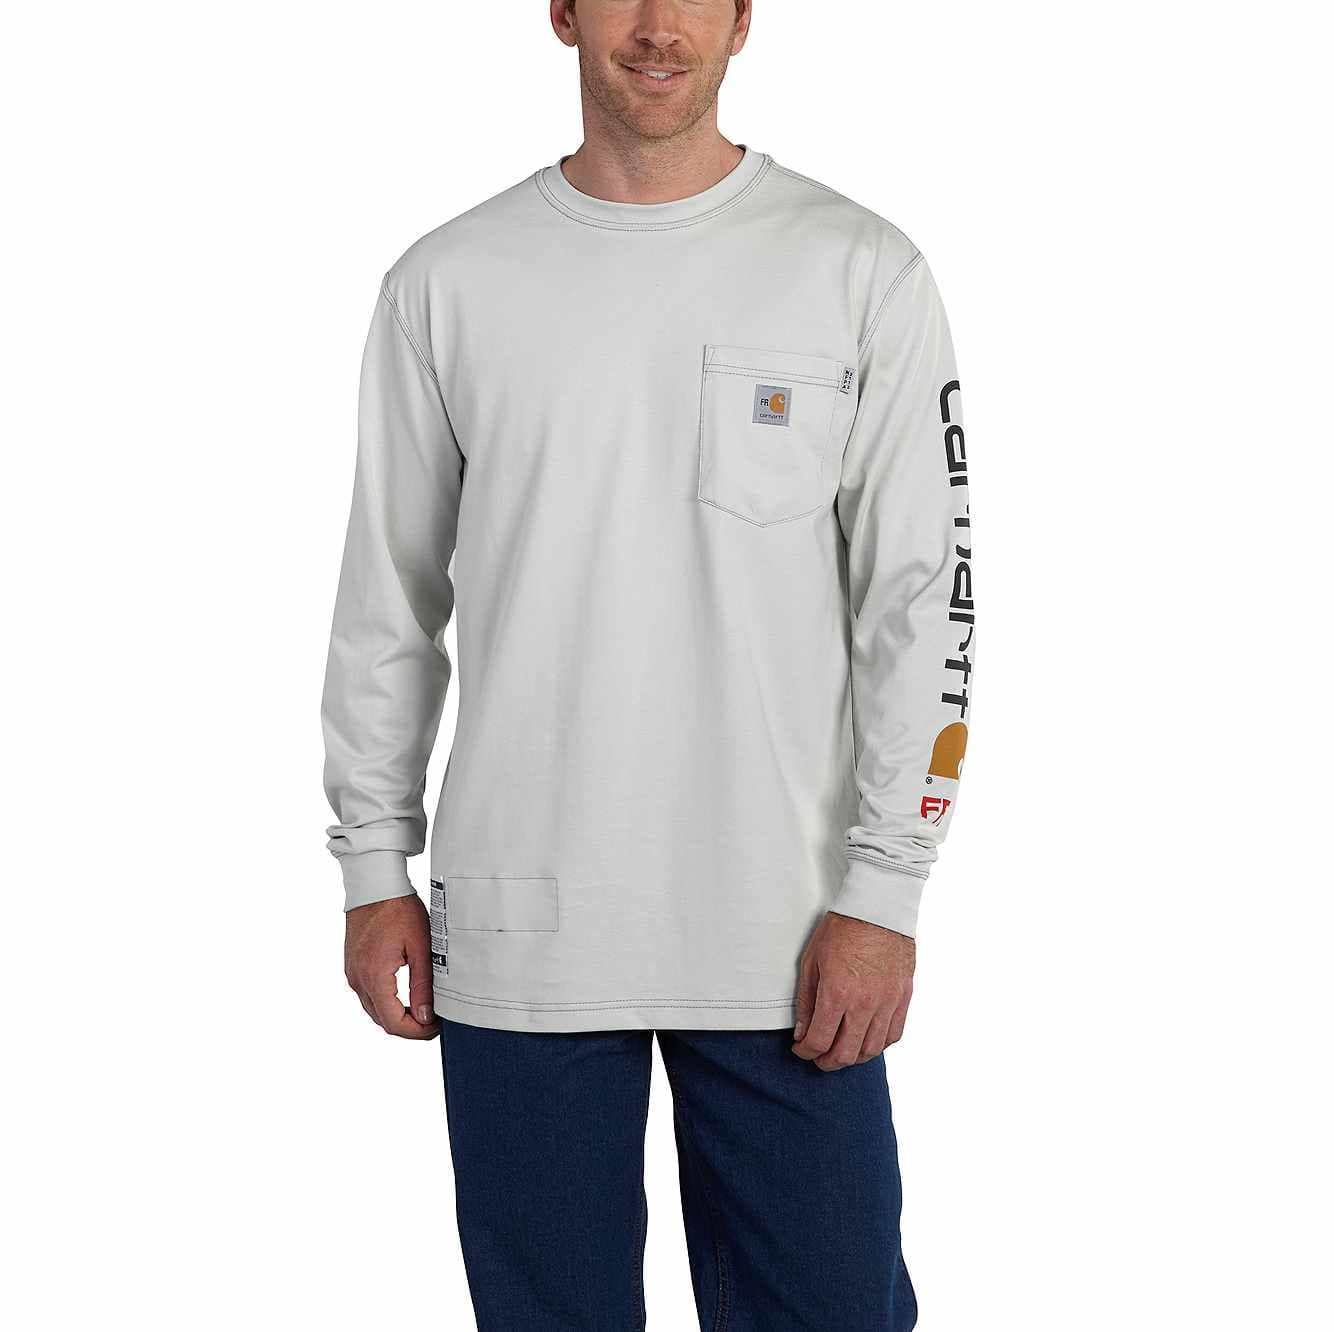 Picture of Flame-Resistant Carhartt Force® Graphic Long-Sleeve T-Shirt in Light Gray